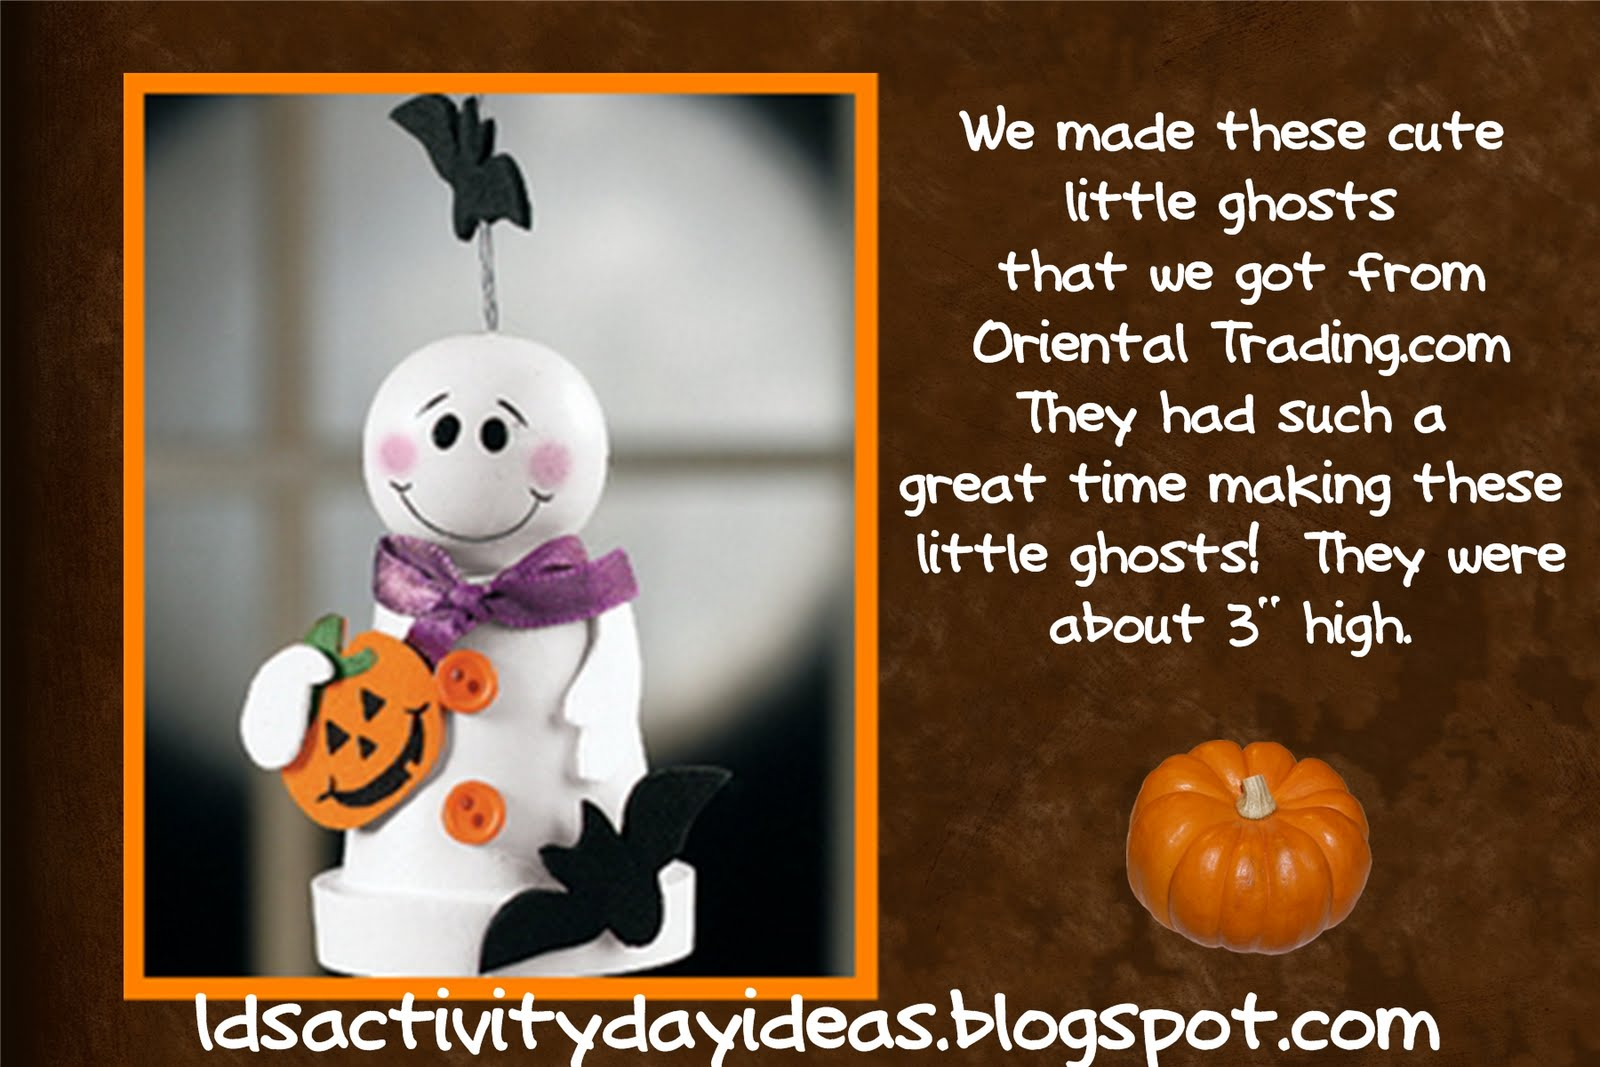 lds activity day ideas: halloween ideas